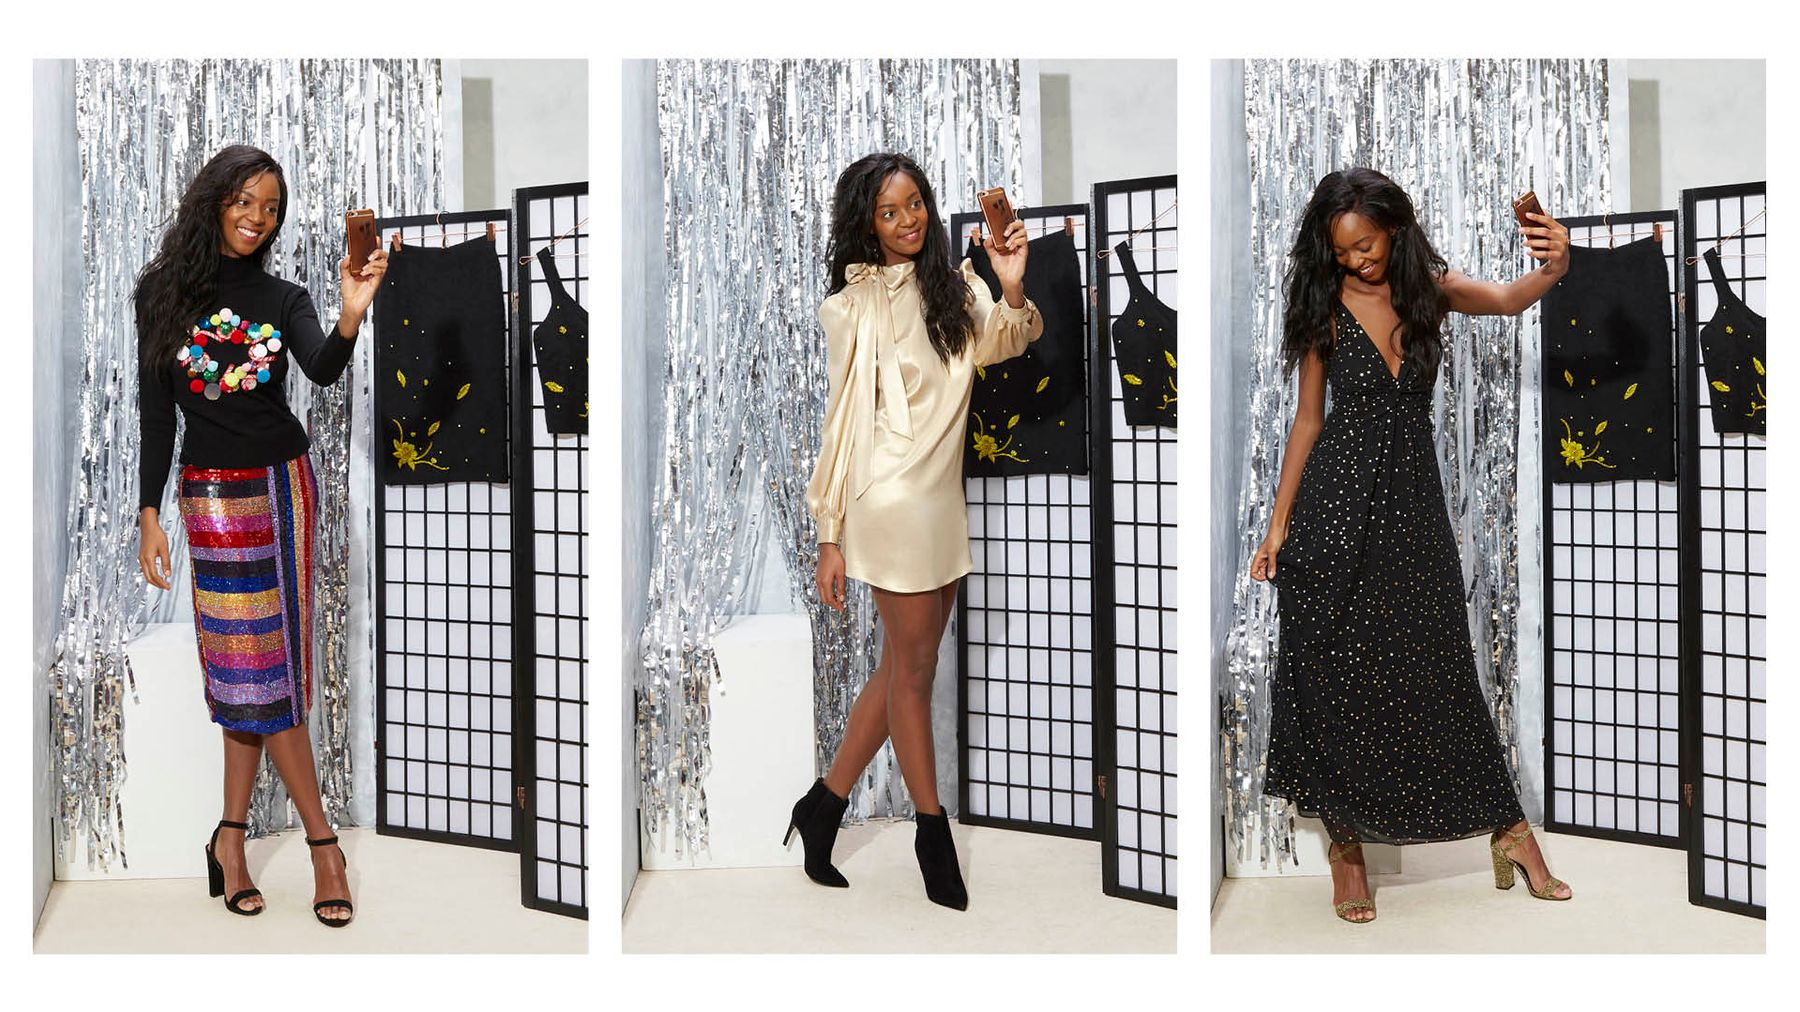 Christmas Party Outfits.We Try On The Best Christmas Party Outfits Topshop Has To